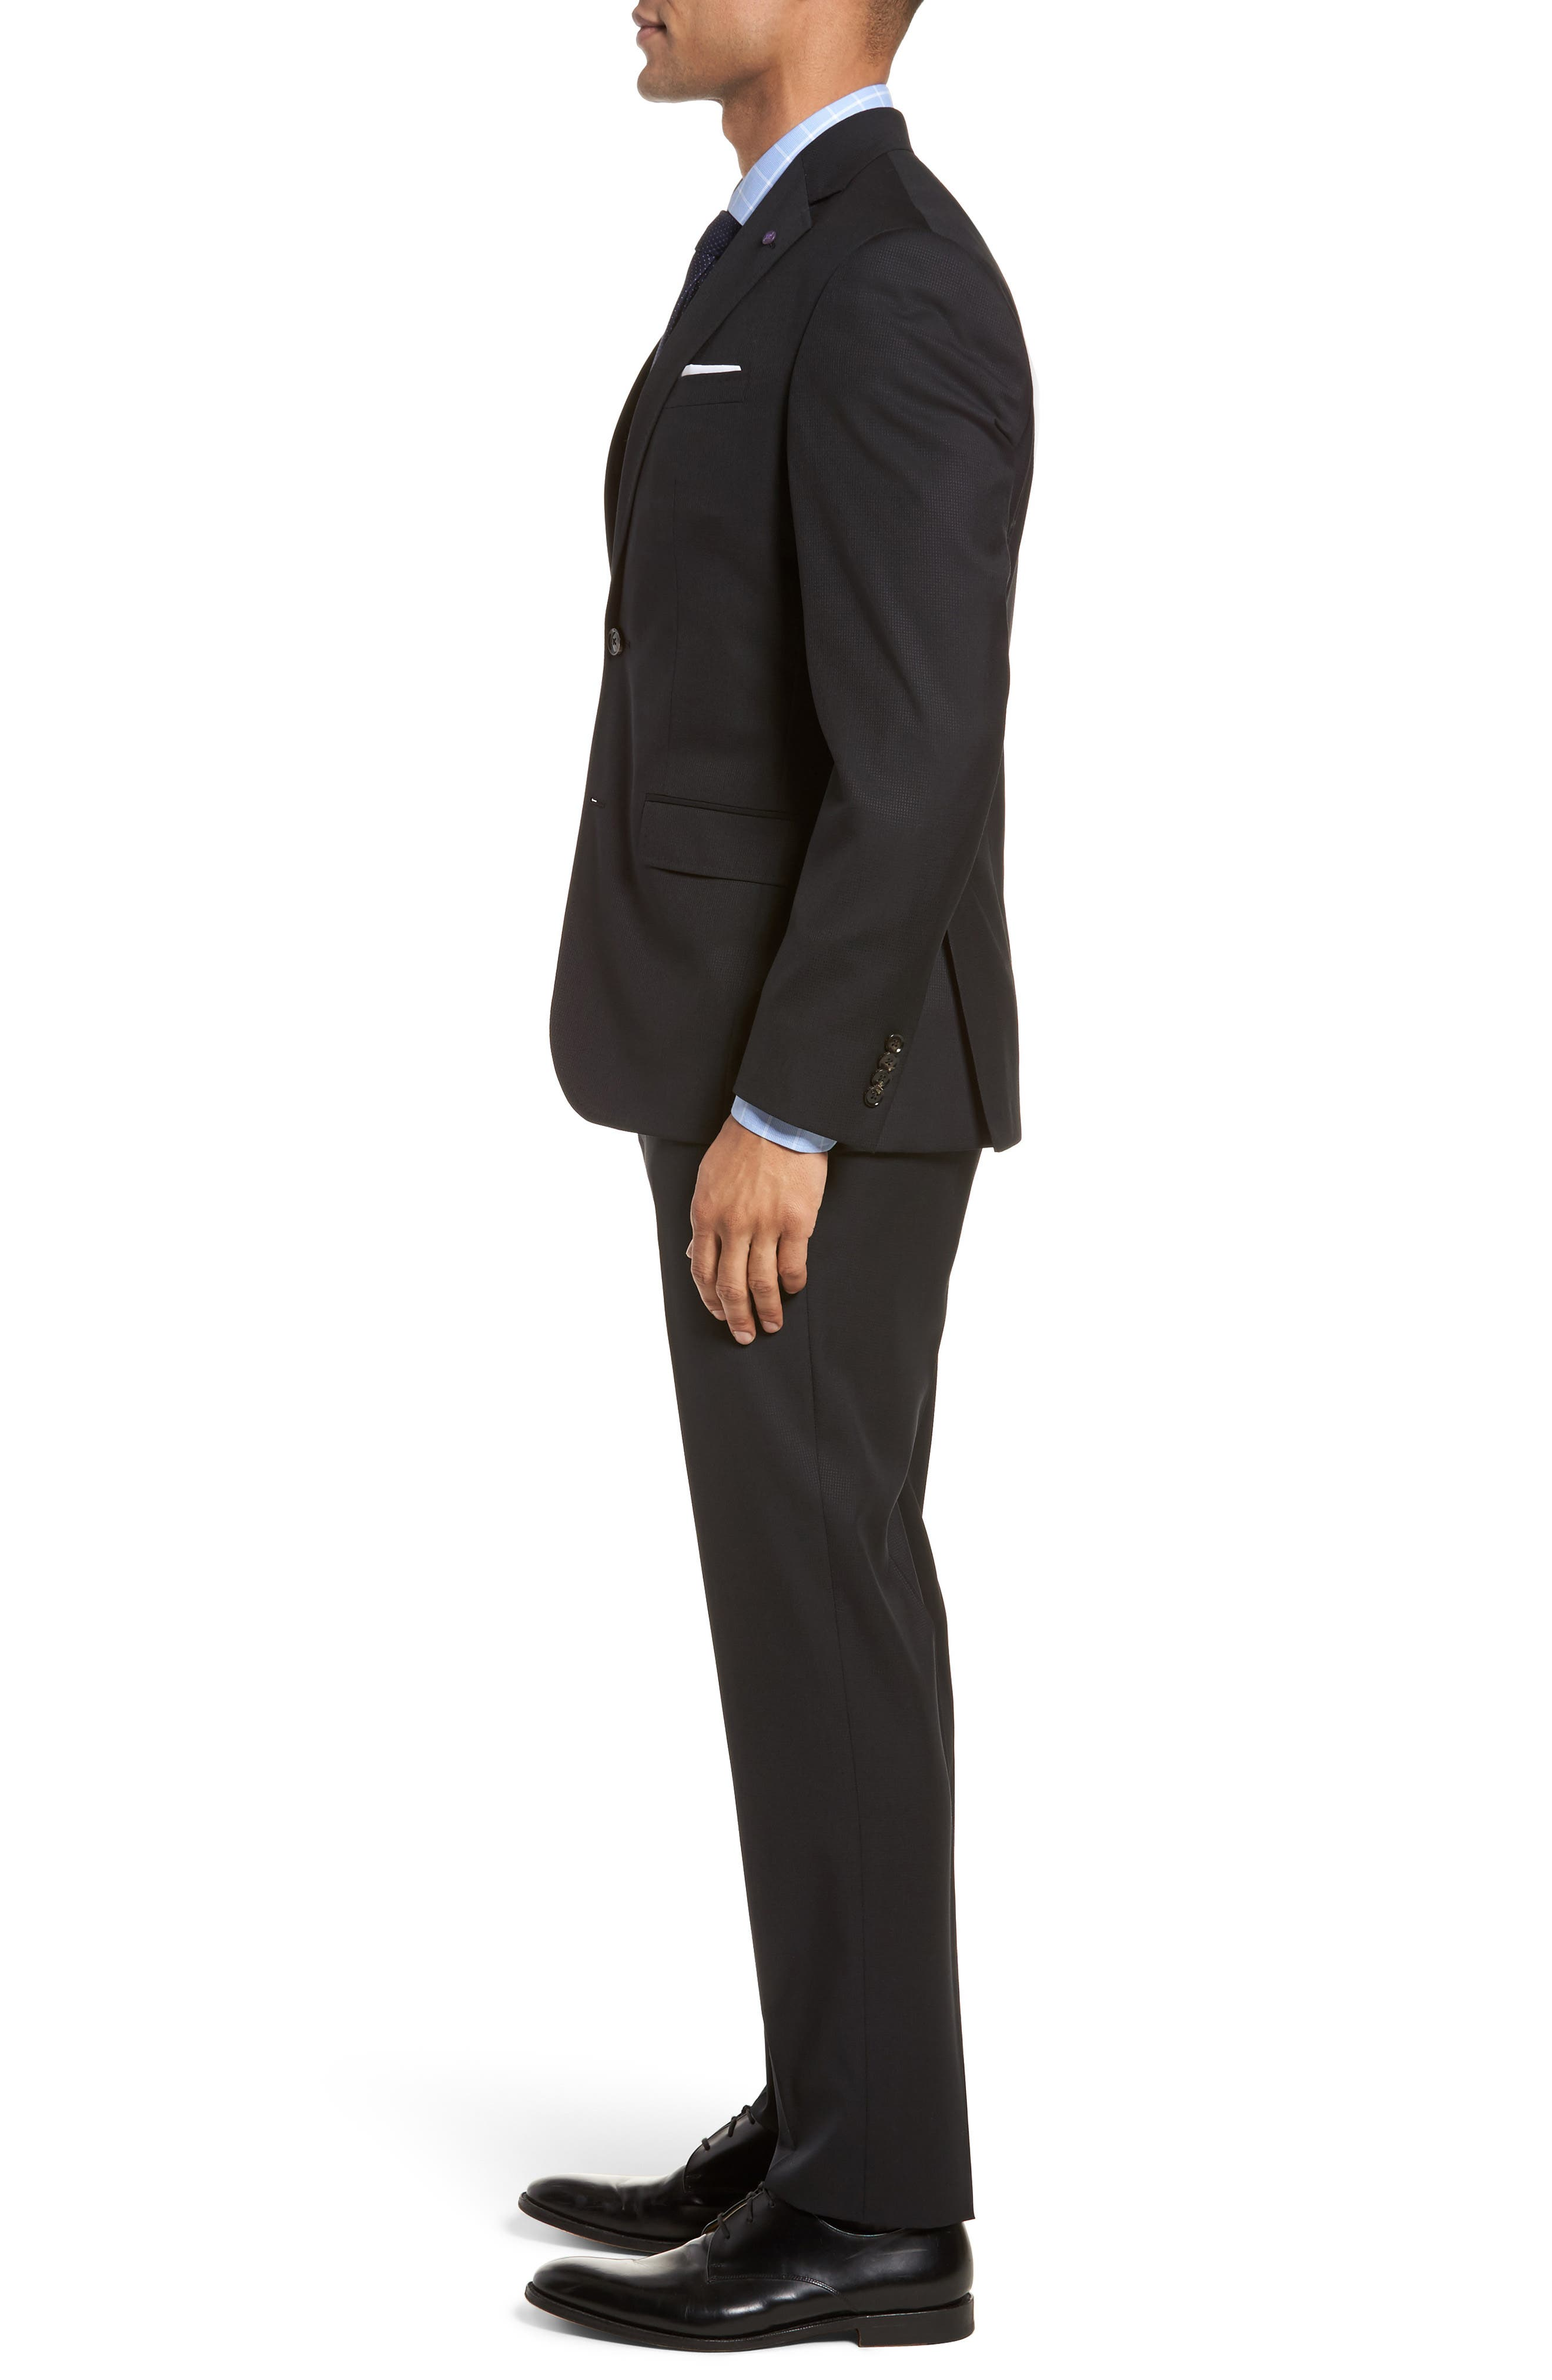 Roger Extra Slim Fit Solid Wool Suit,                             Alternate thumbnail 3, color,                             001